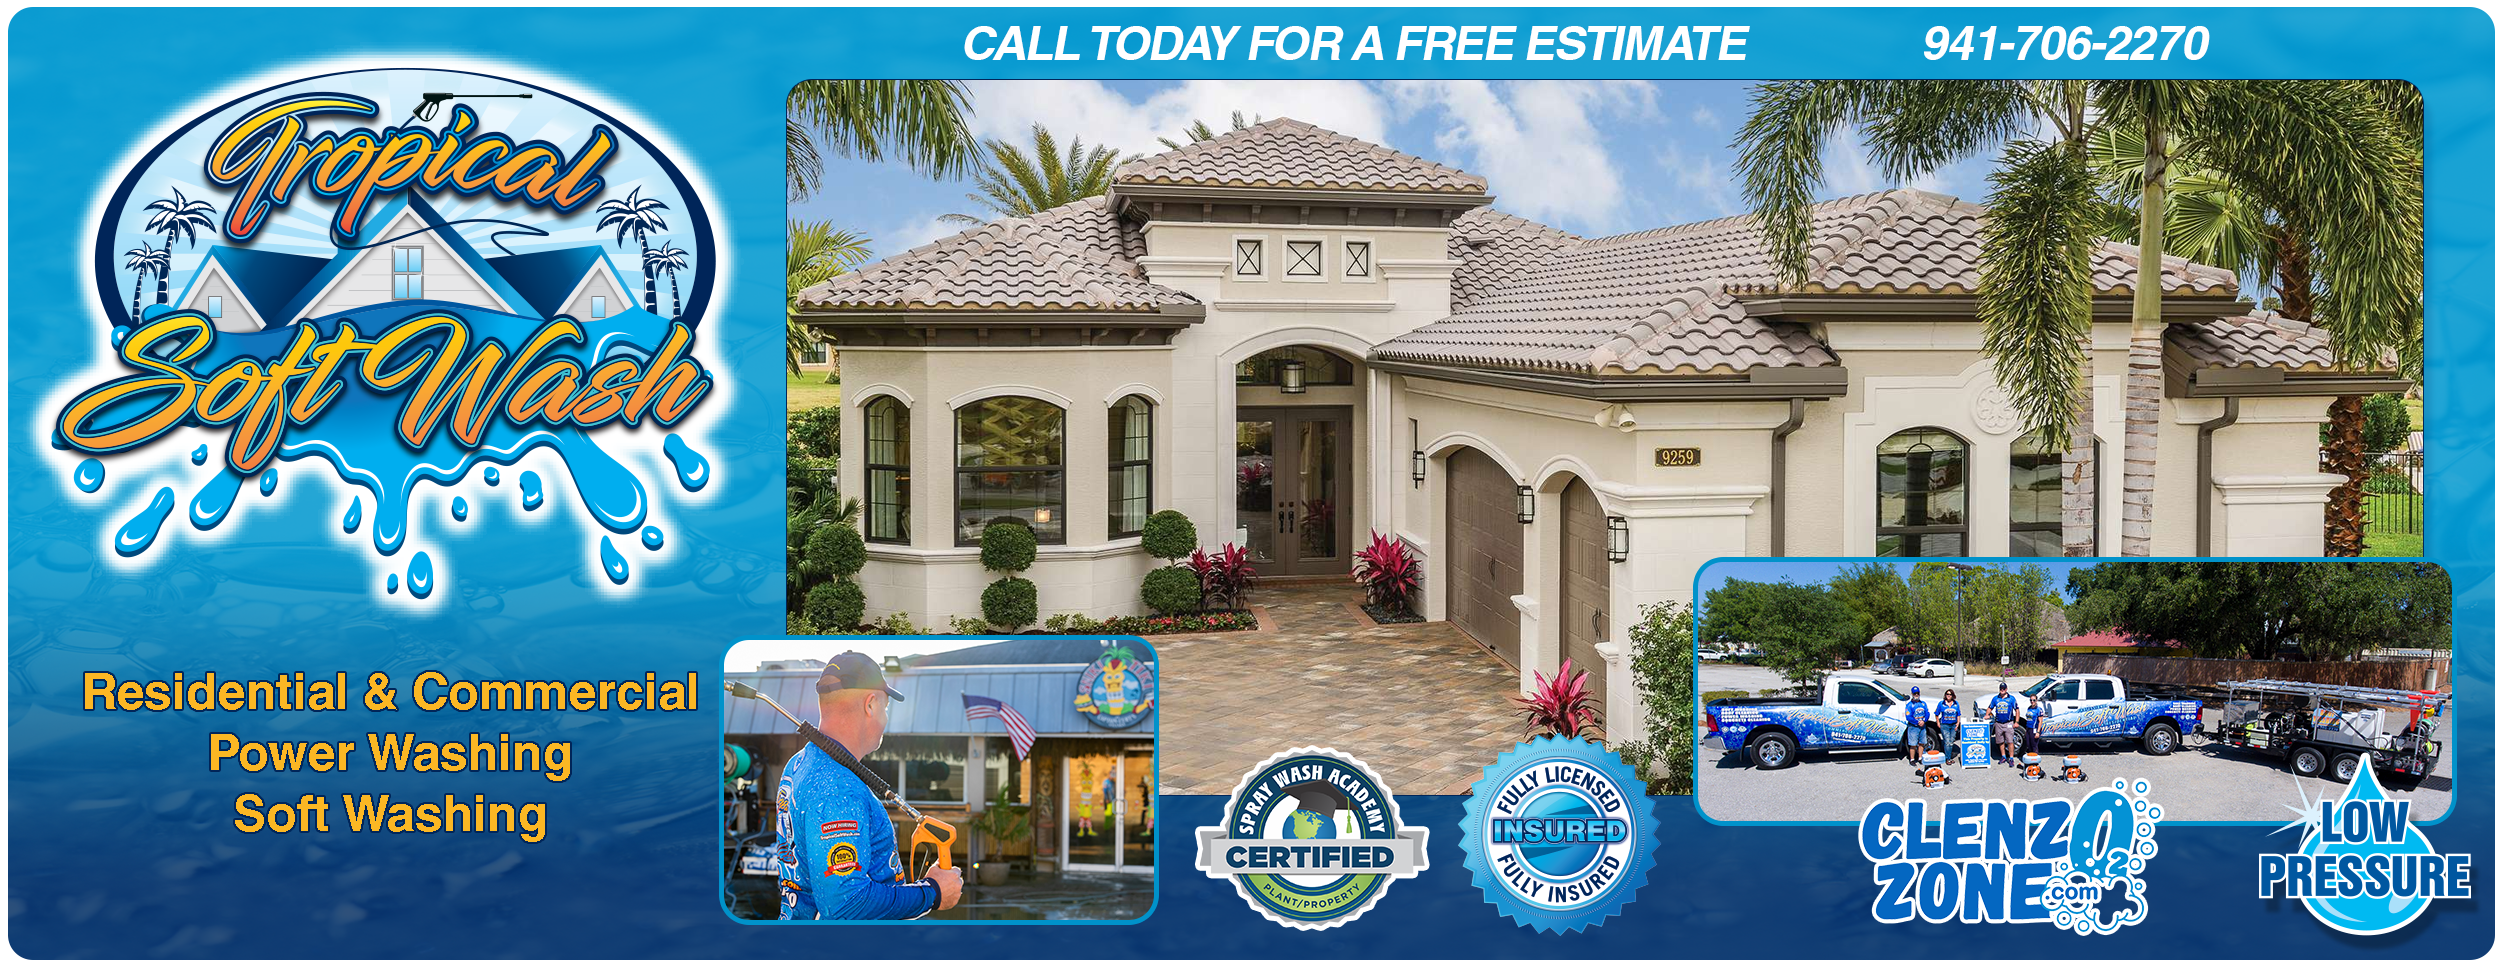 Tropical SoftWash LLC Sarasota Florida